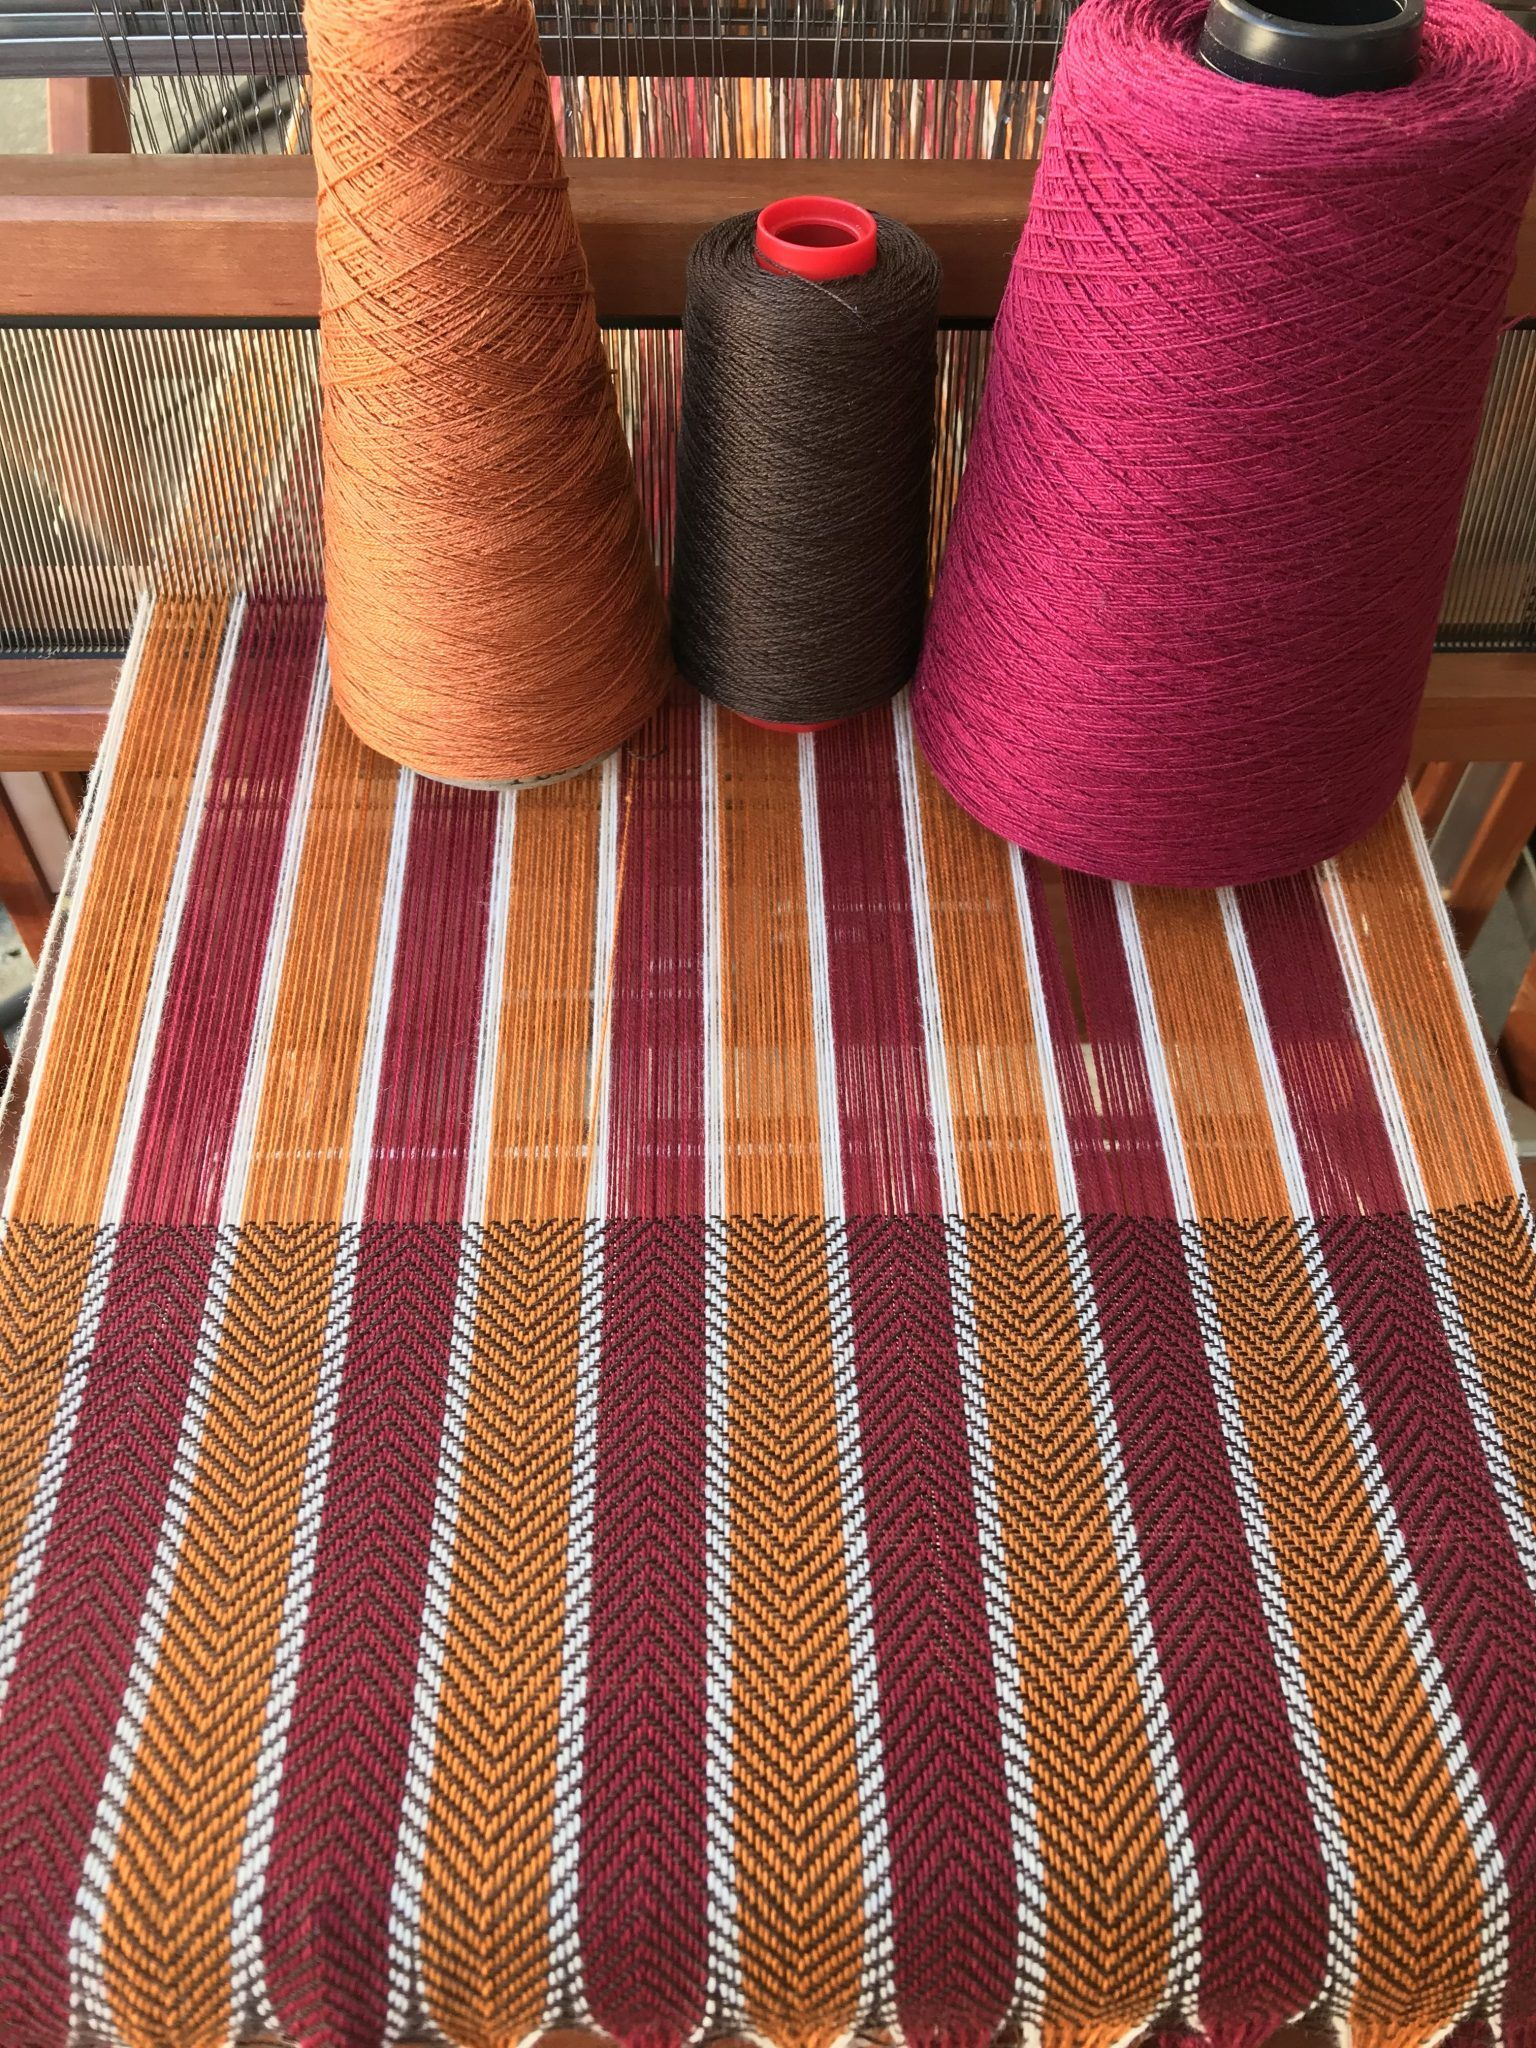 Want to design gorgeous handwoven cloth? Five keys to designing with color.